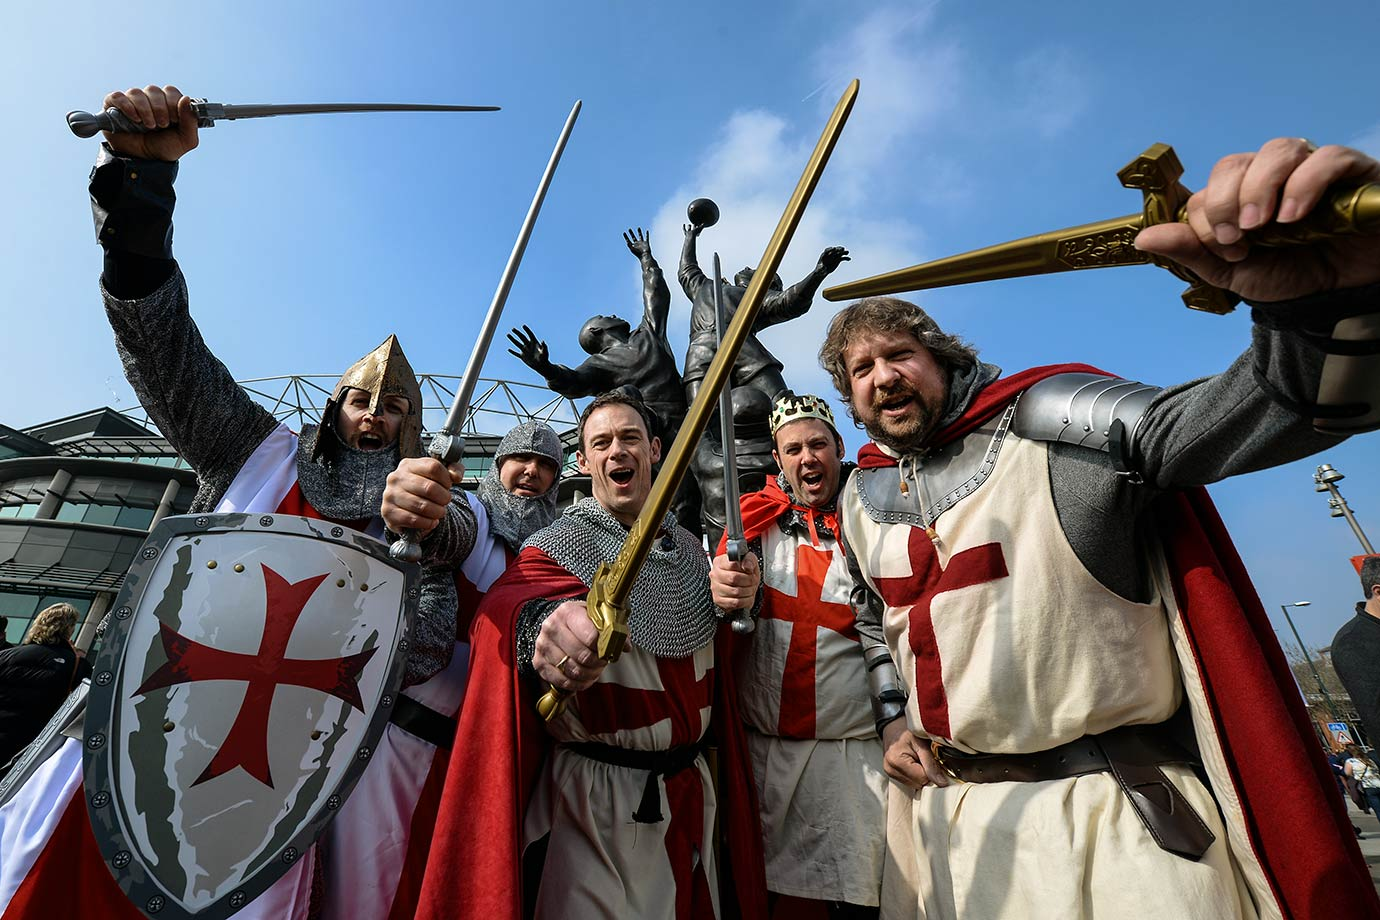 England rugby fans arrive at Twickenham Stadium dressed as knights under the 'Core Values' sculpture in the lead up to the England vs. Wales 6 Nations fixture in Twickenham, England.